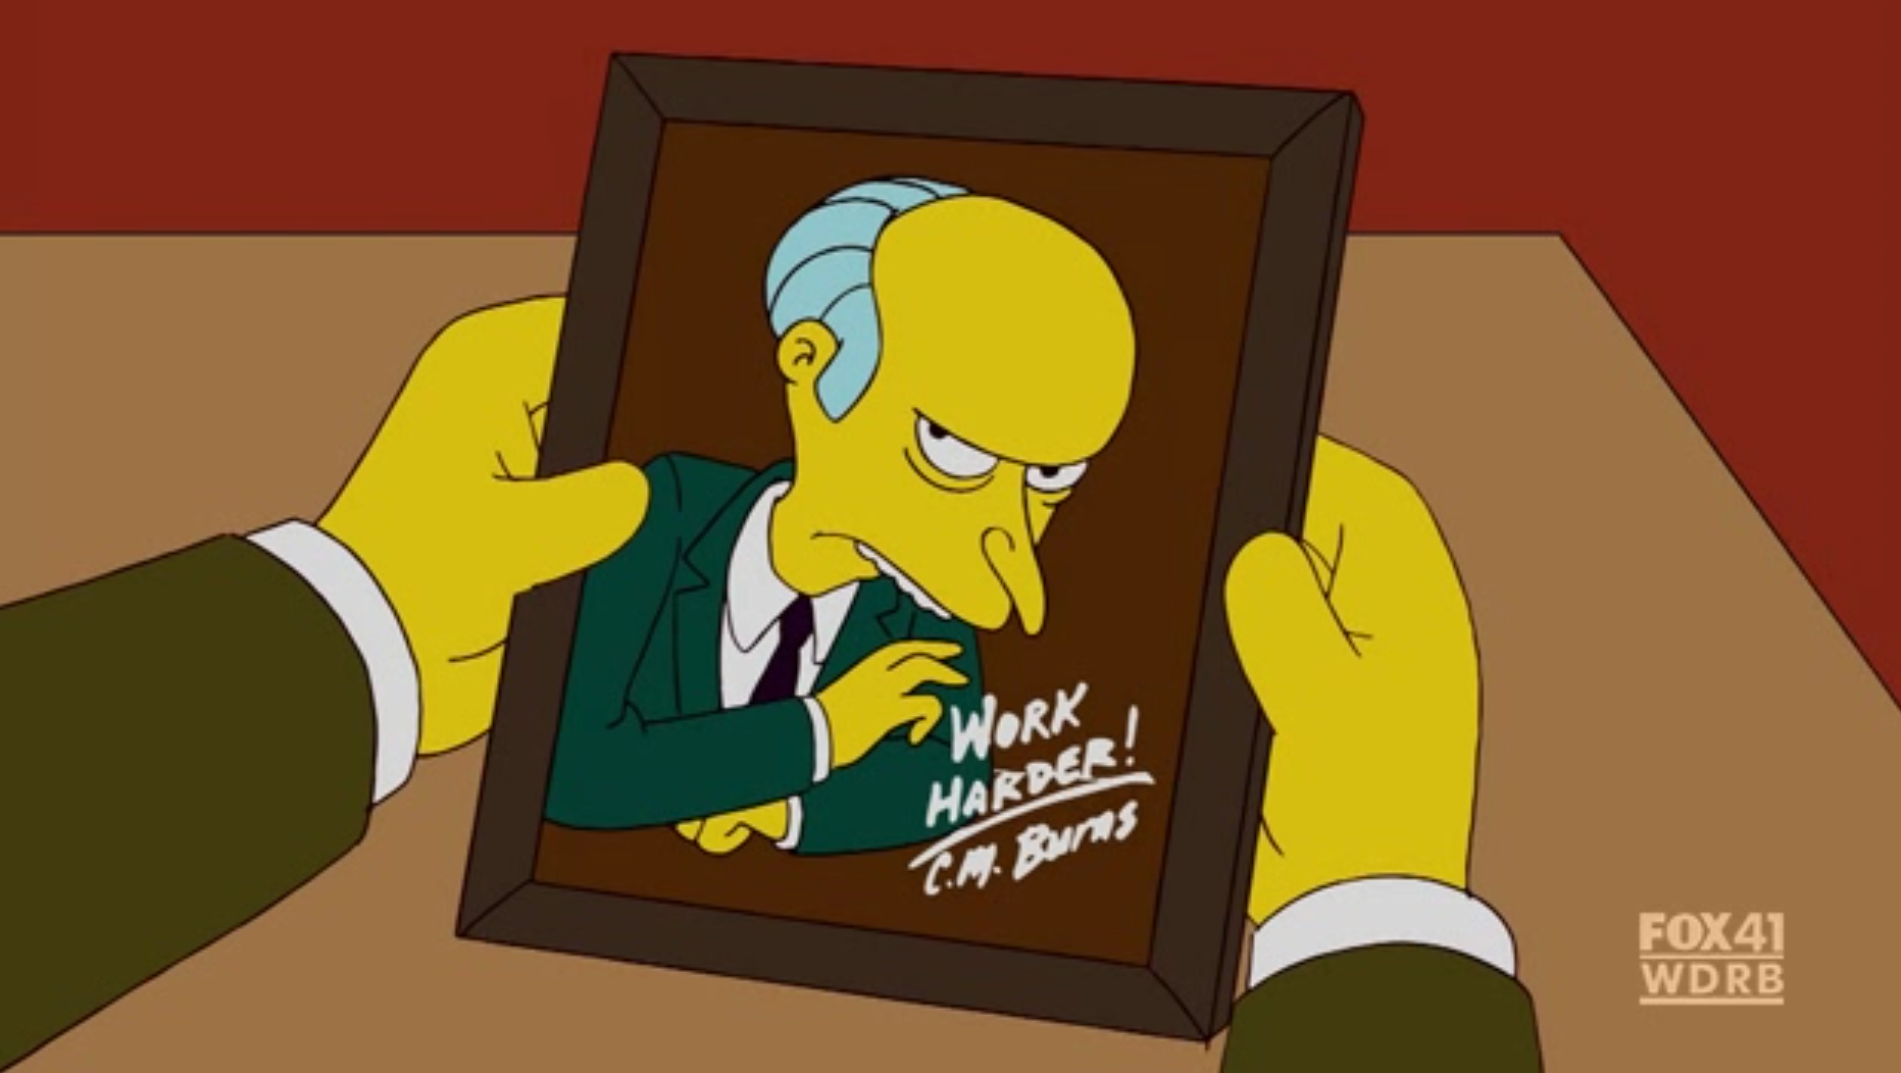 Work Harder From Cm Burns To Smithers